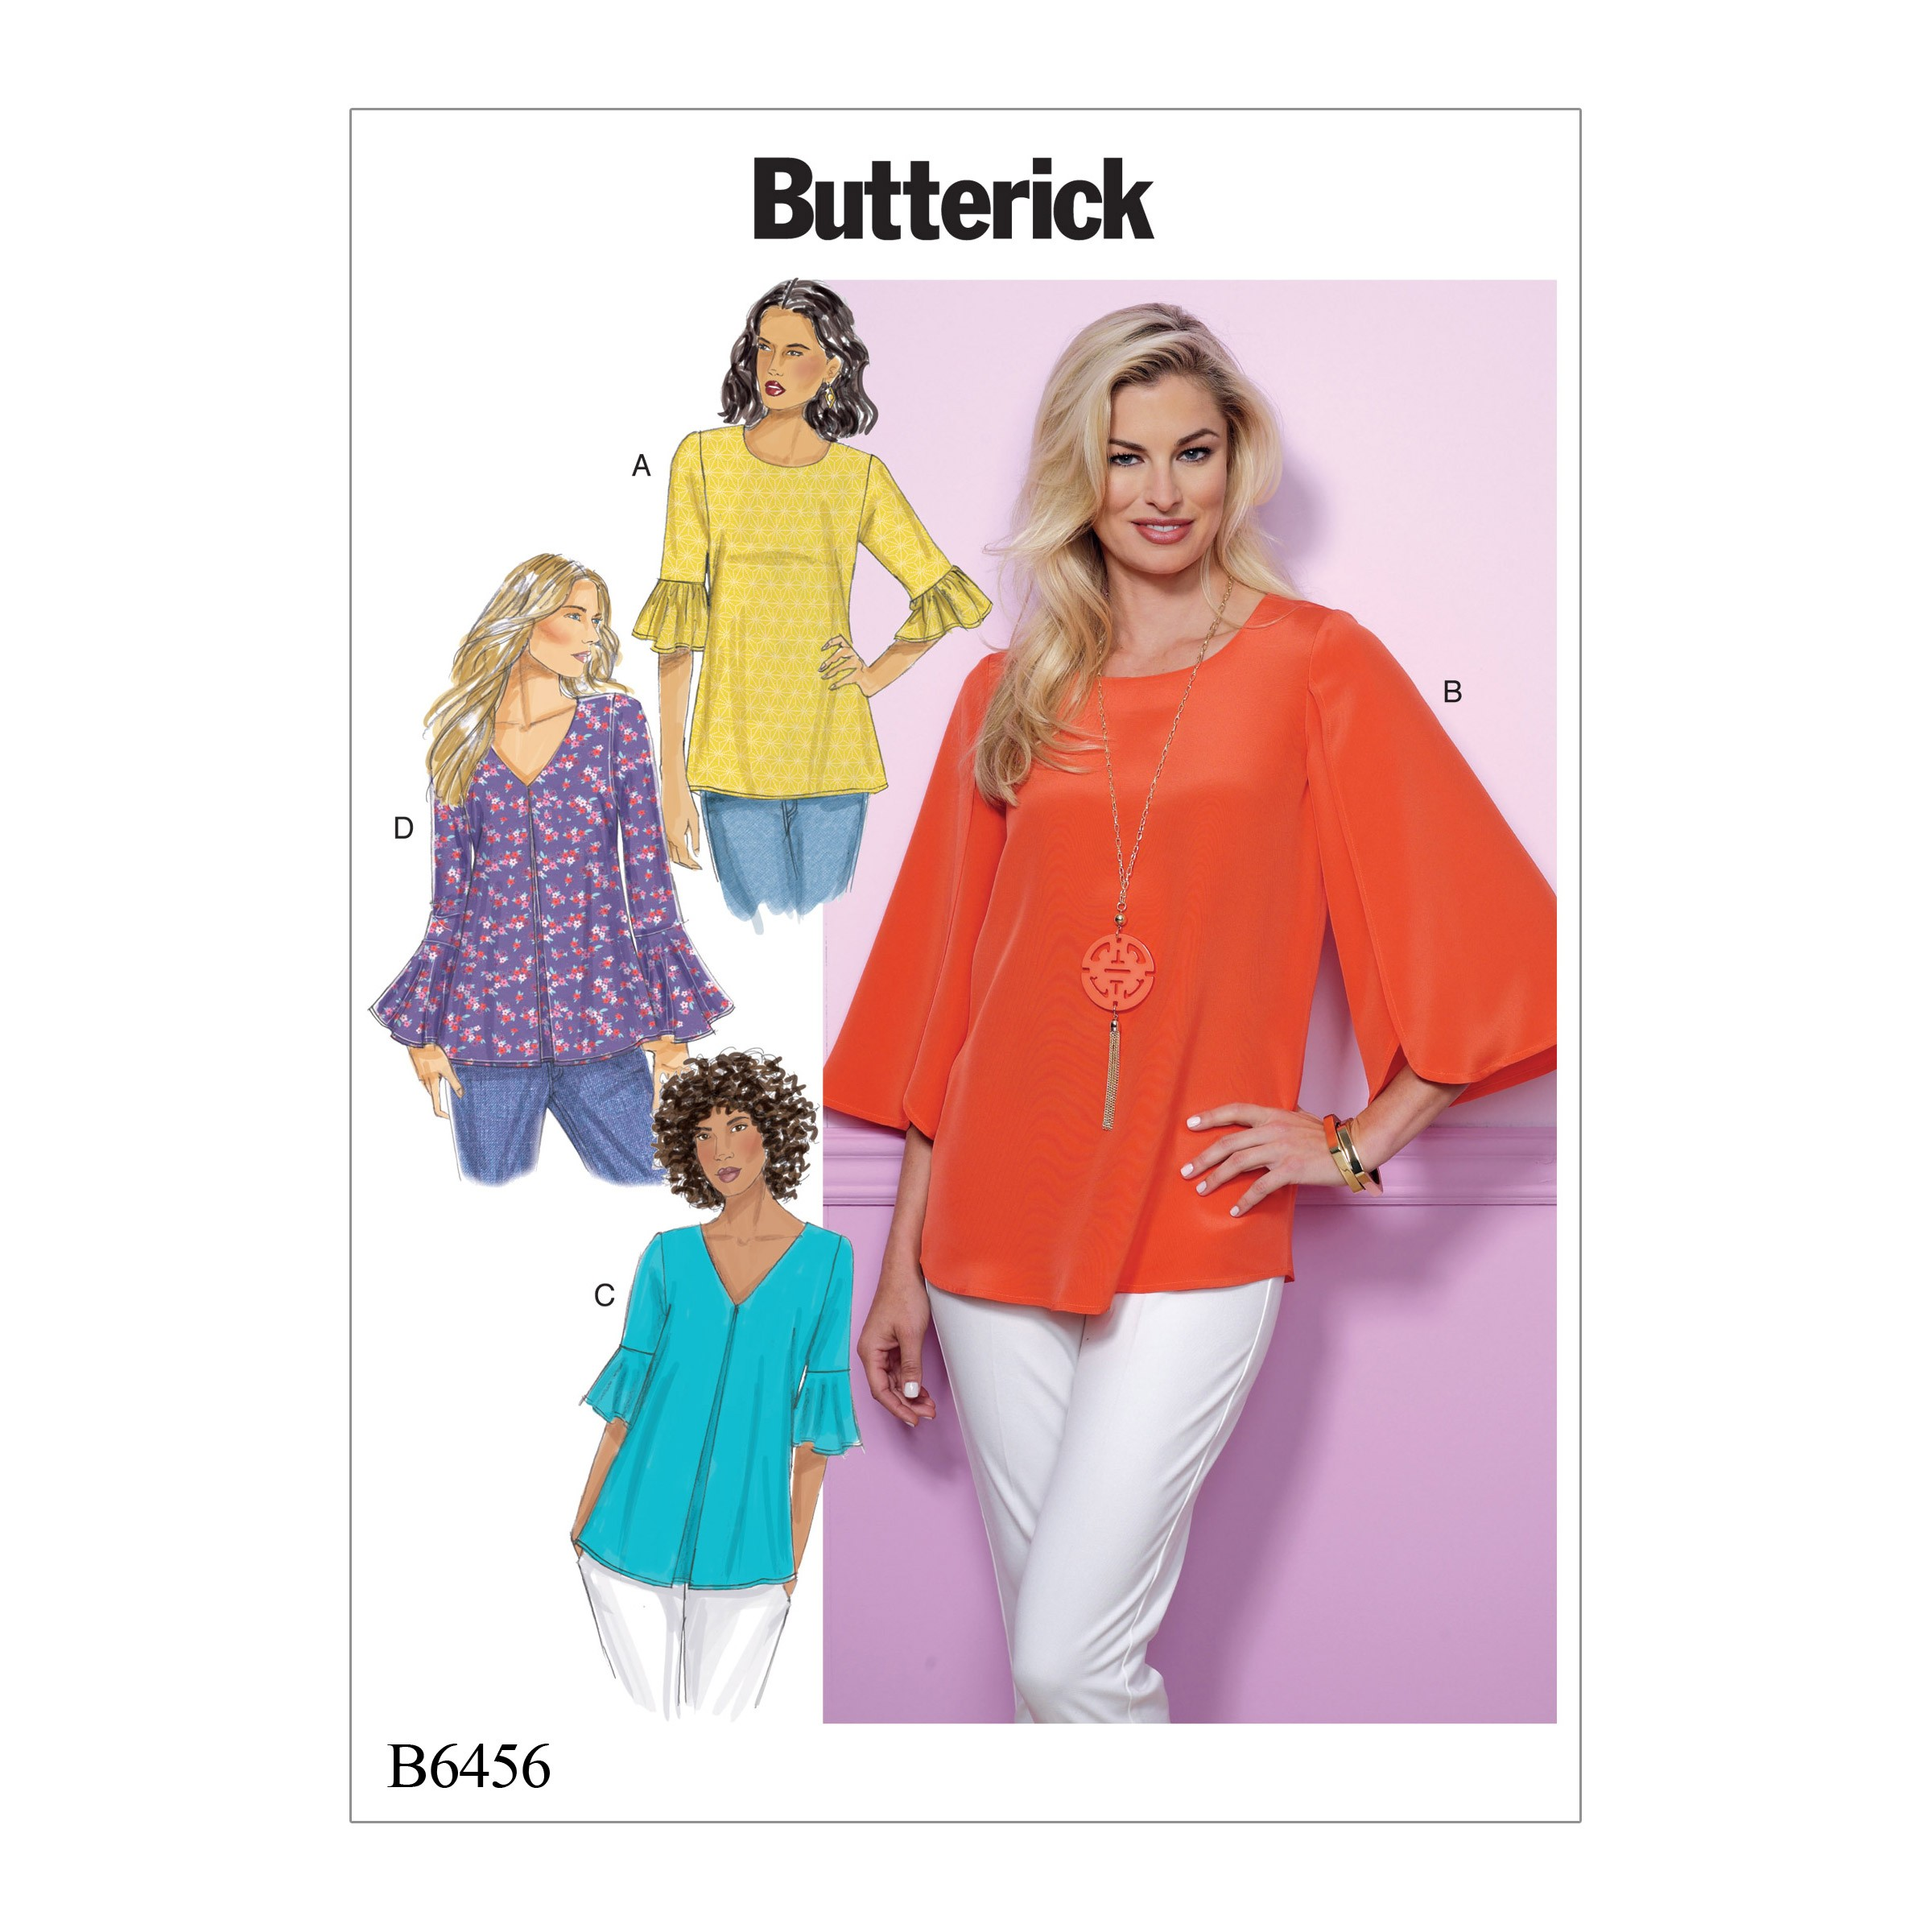 Butterick Sewing Pattern 6456 Misses' Tulip or Ruffle Sleeve Top